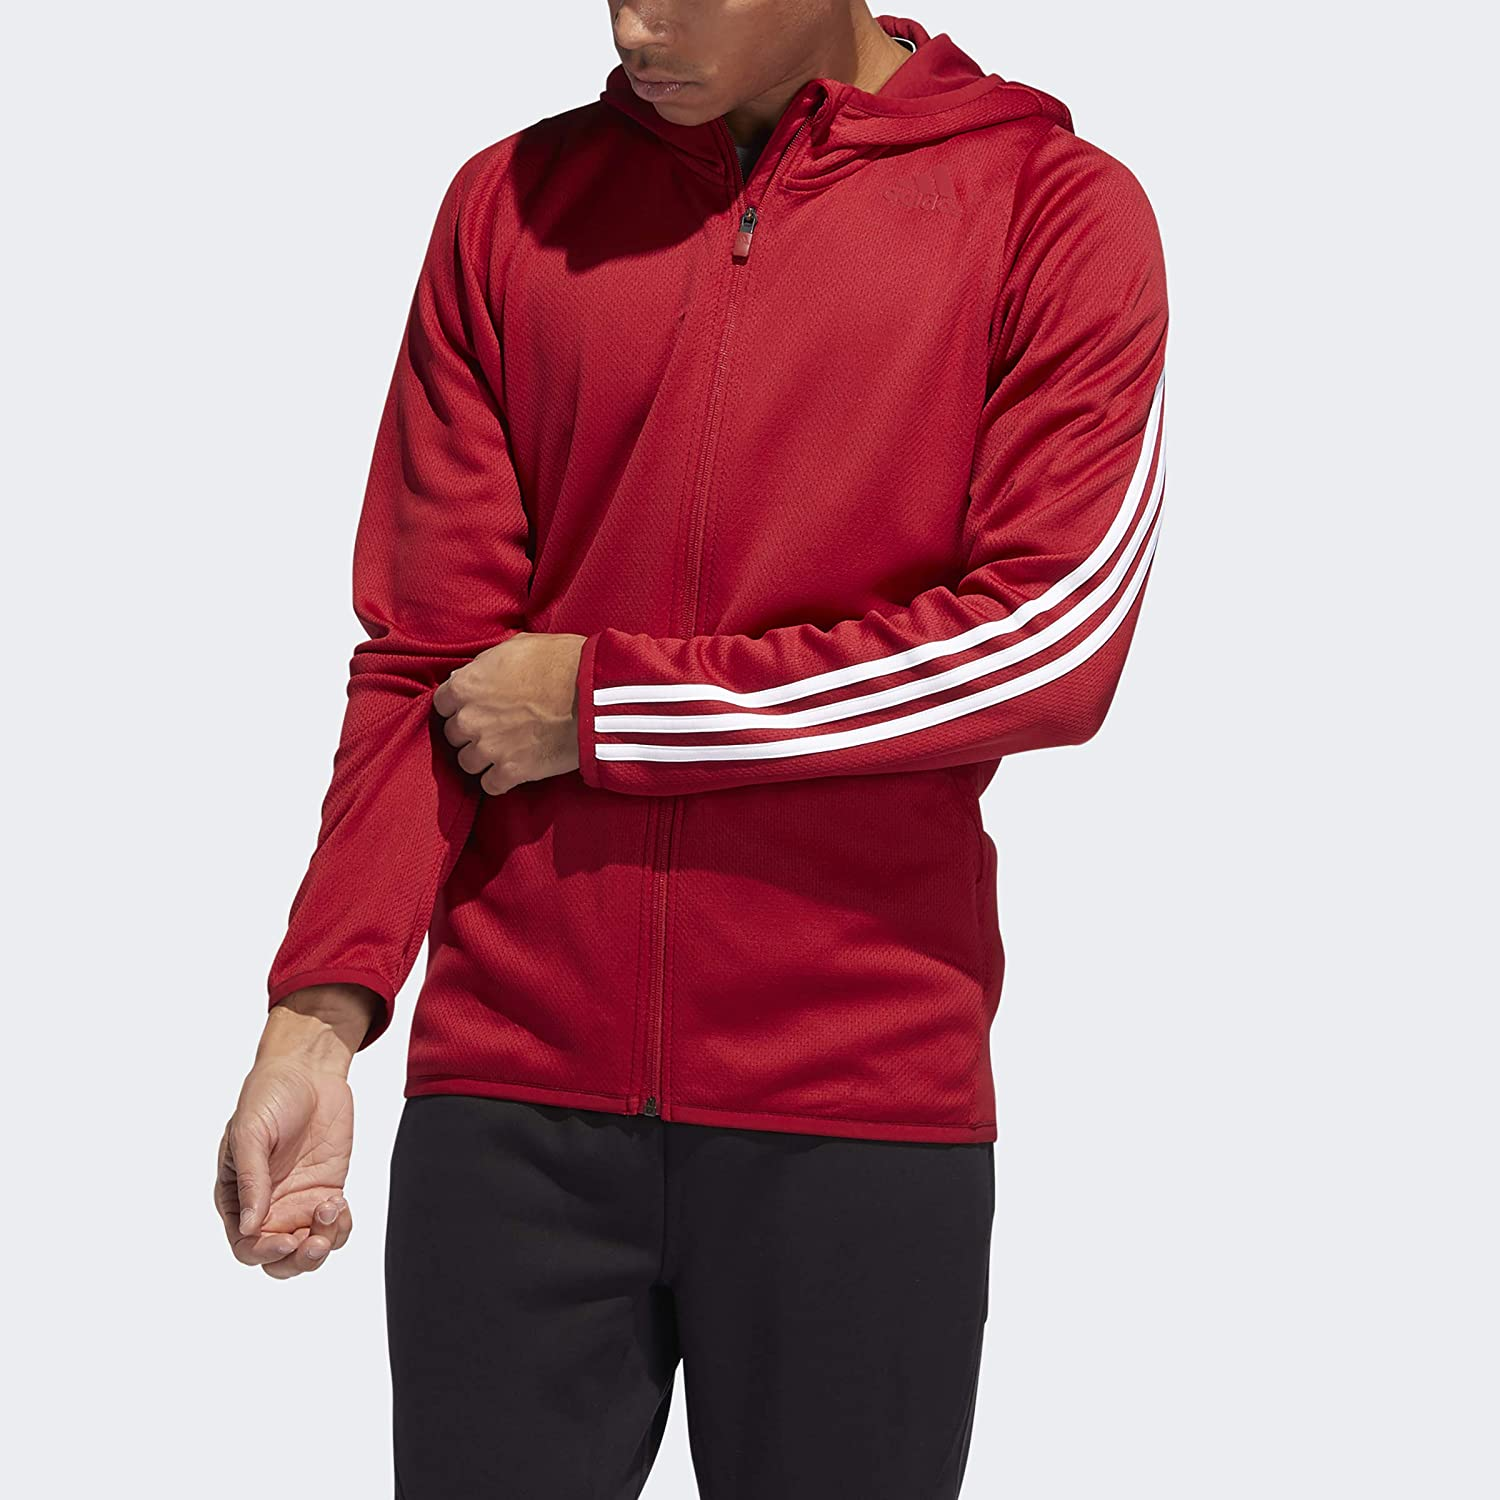 adidas Men's Factory outlet Daily Factory outlet Hooded 3-Stripes Sweatshirt